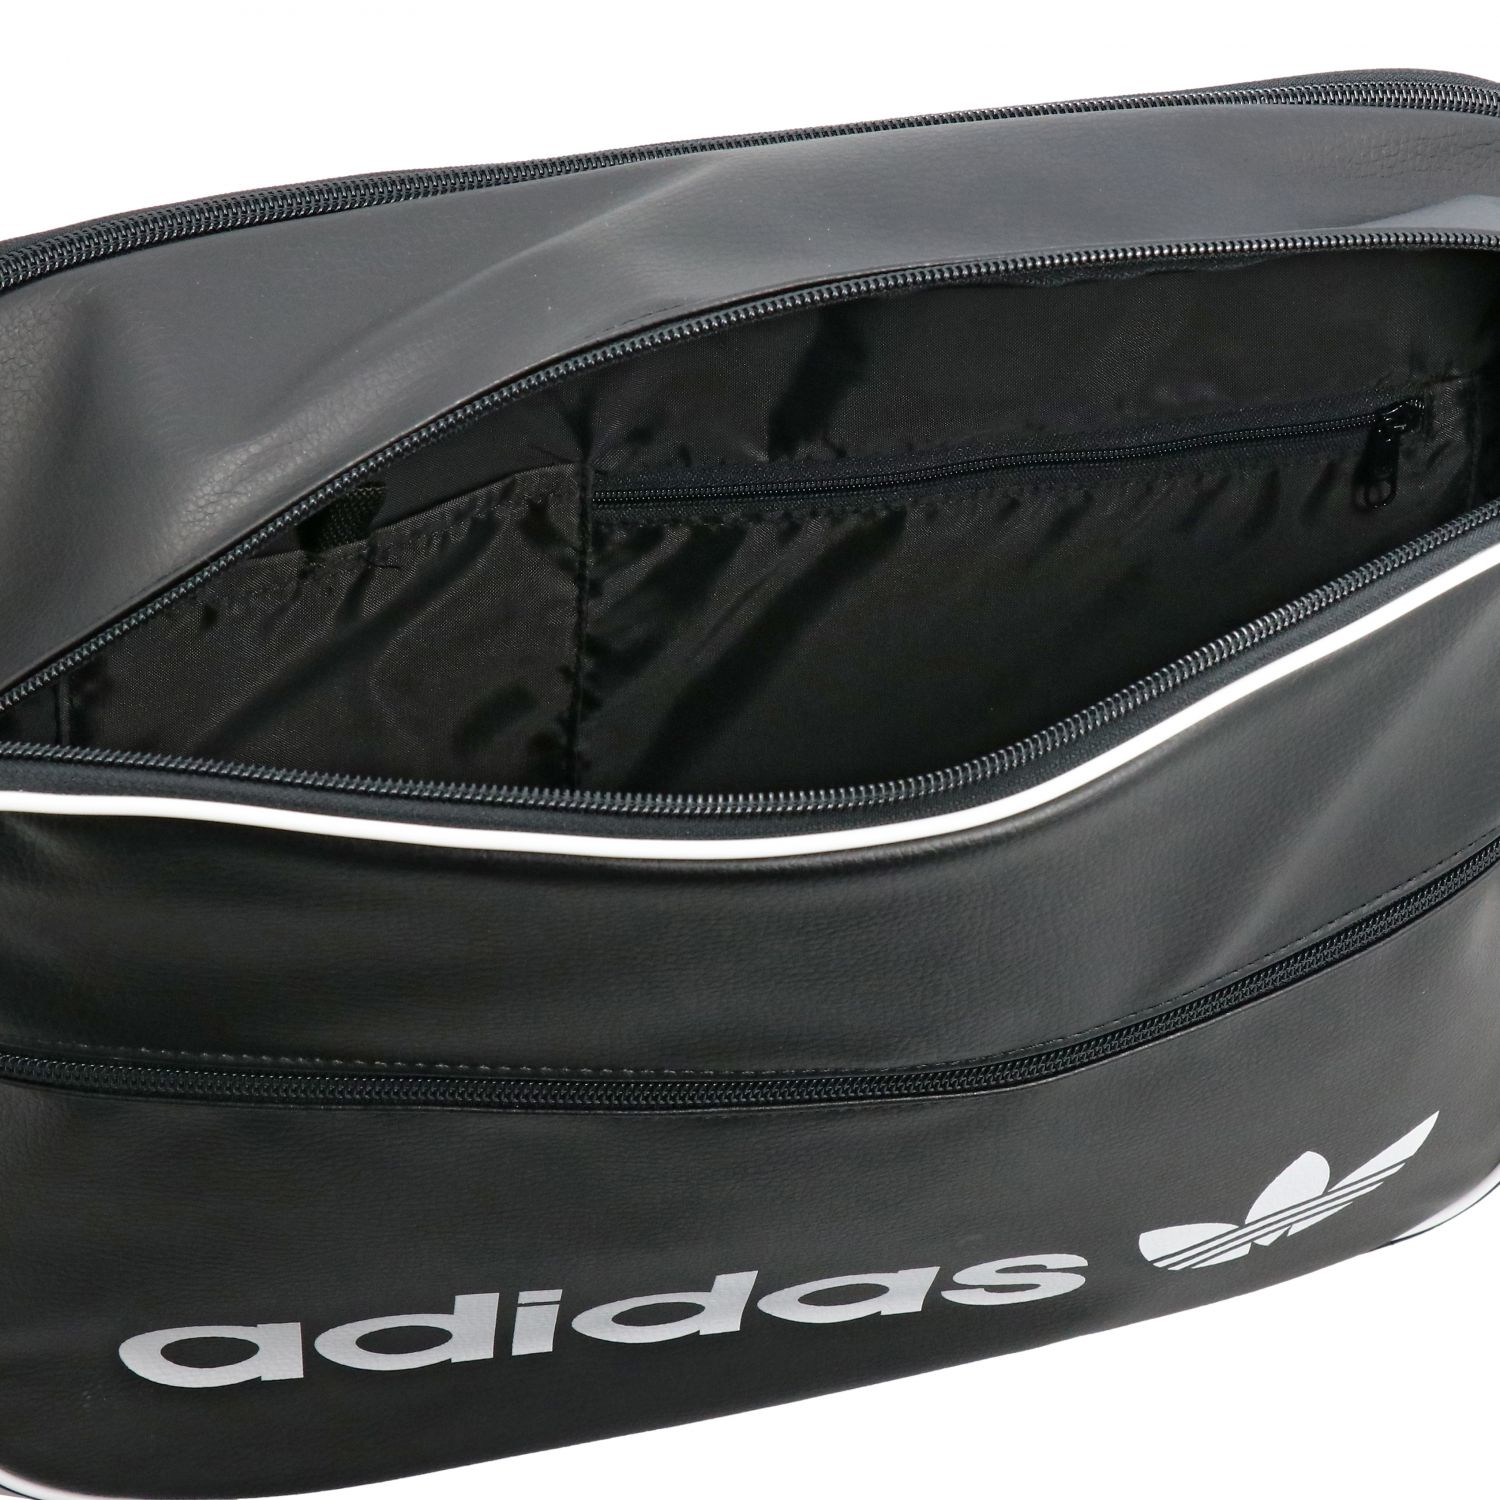 Bag Adidas Originals: Bag kids Adidas Originals black 5